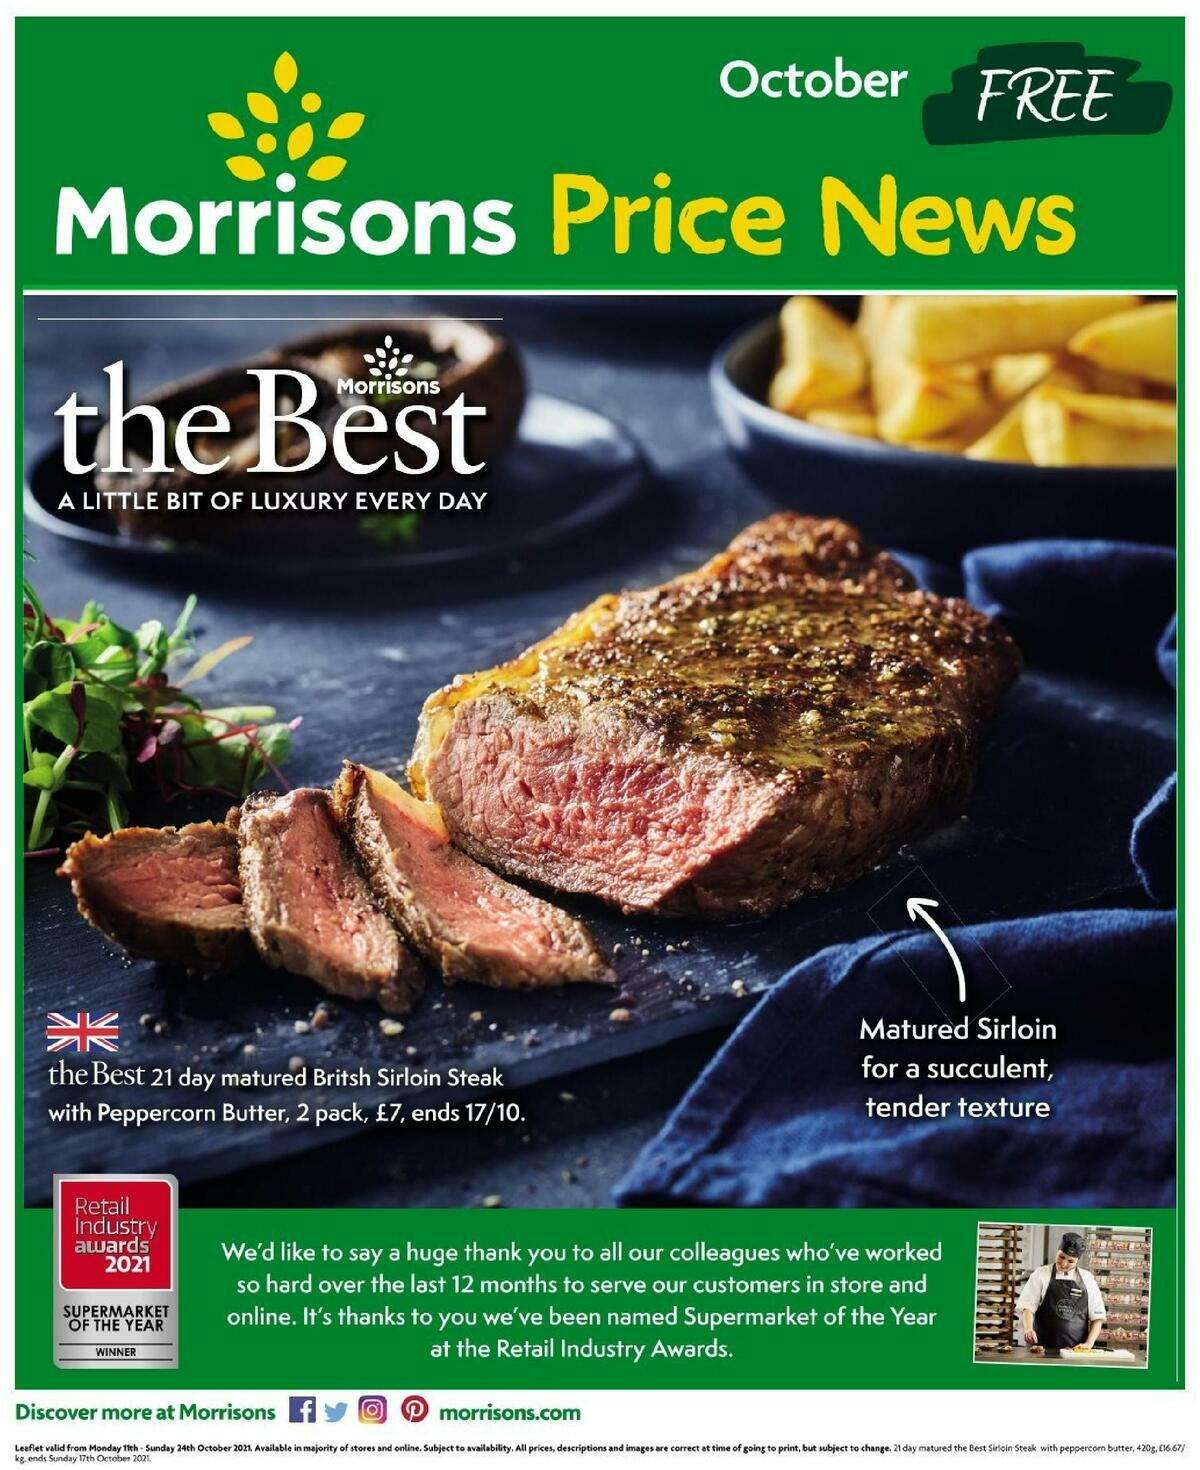 Morrisons Offers from October 11